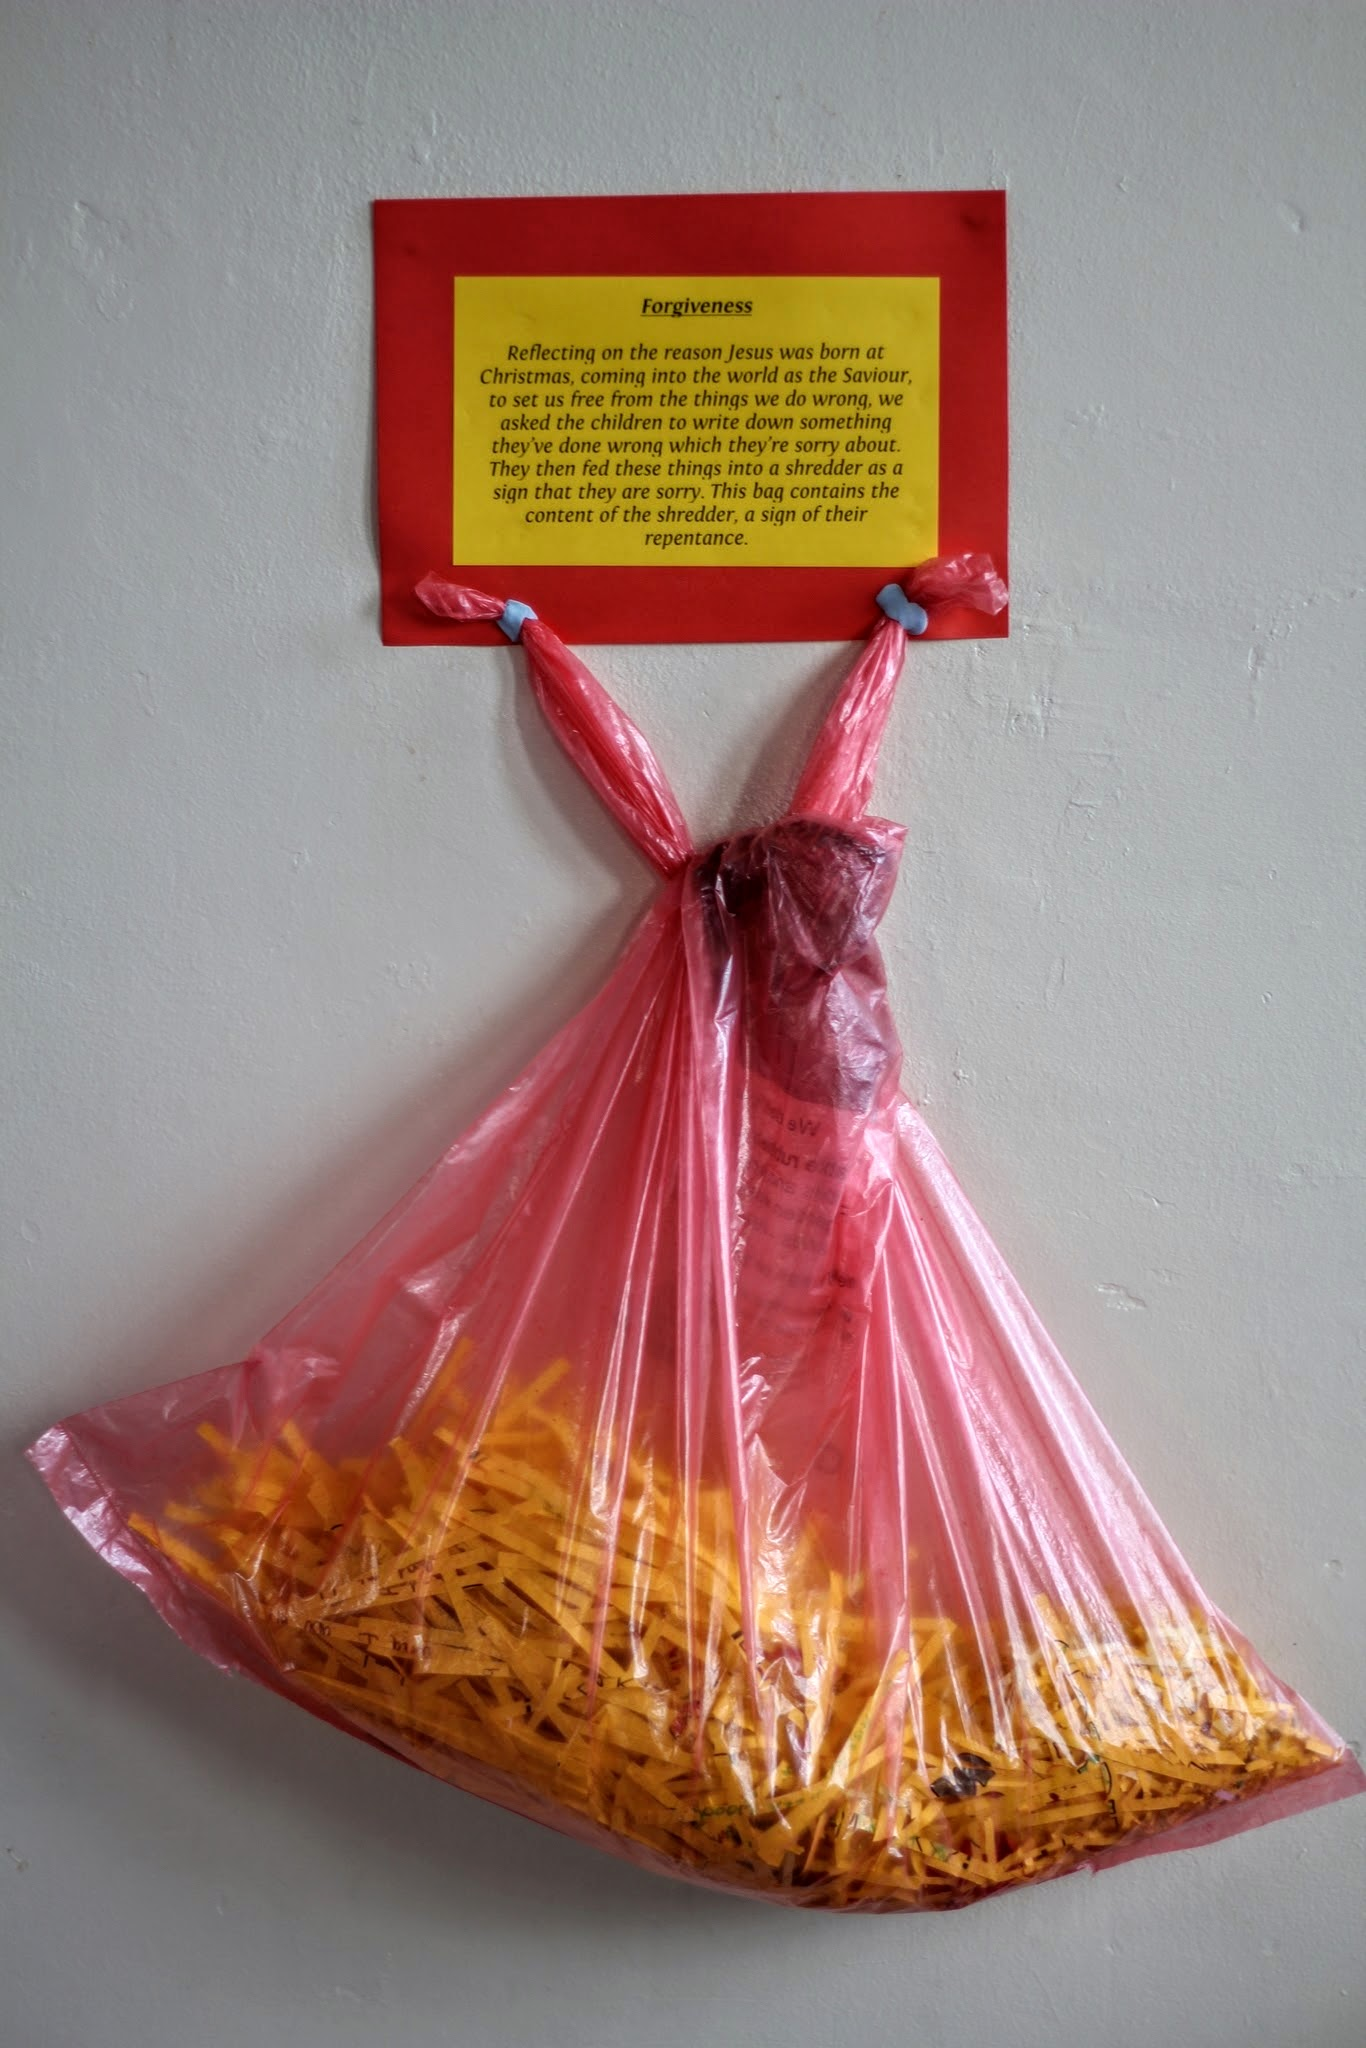 Our shredded Sorry sheets - a sign of forgiveness